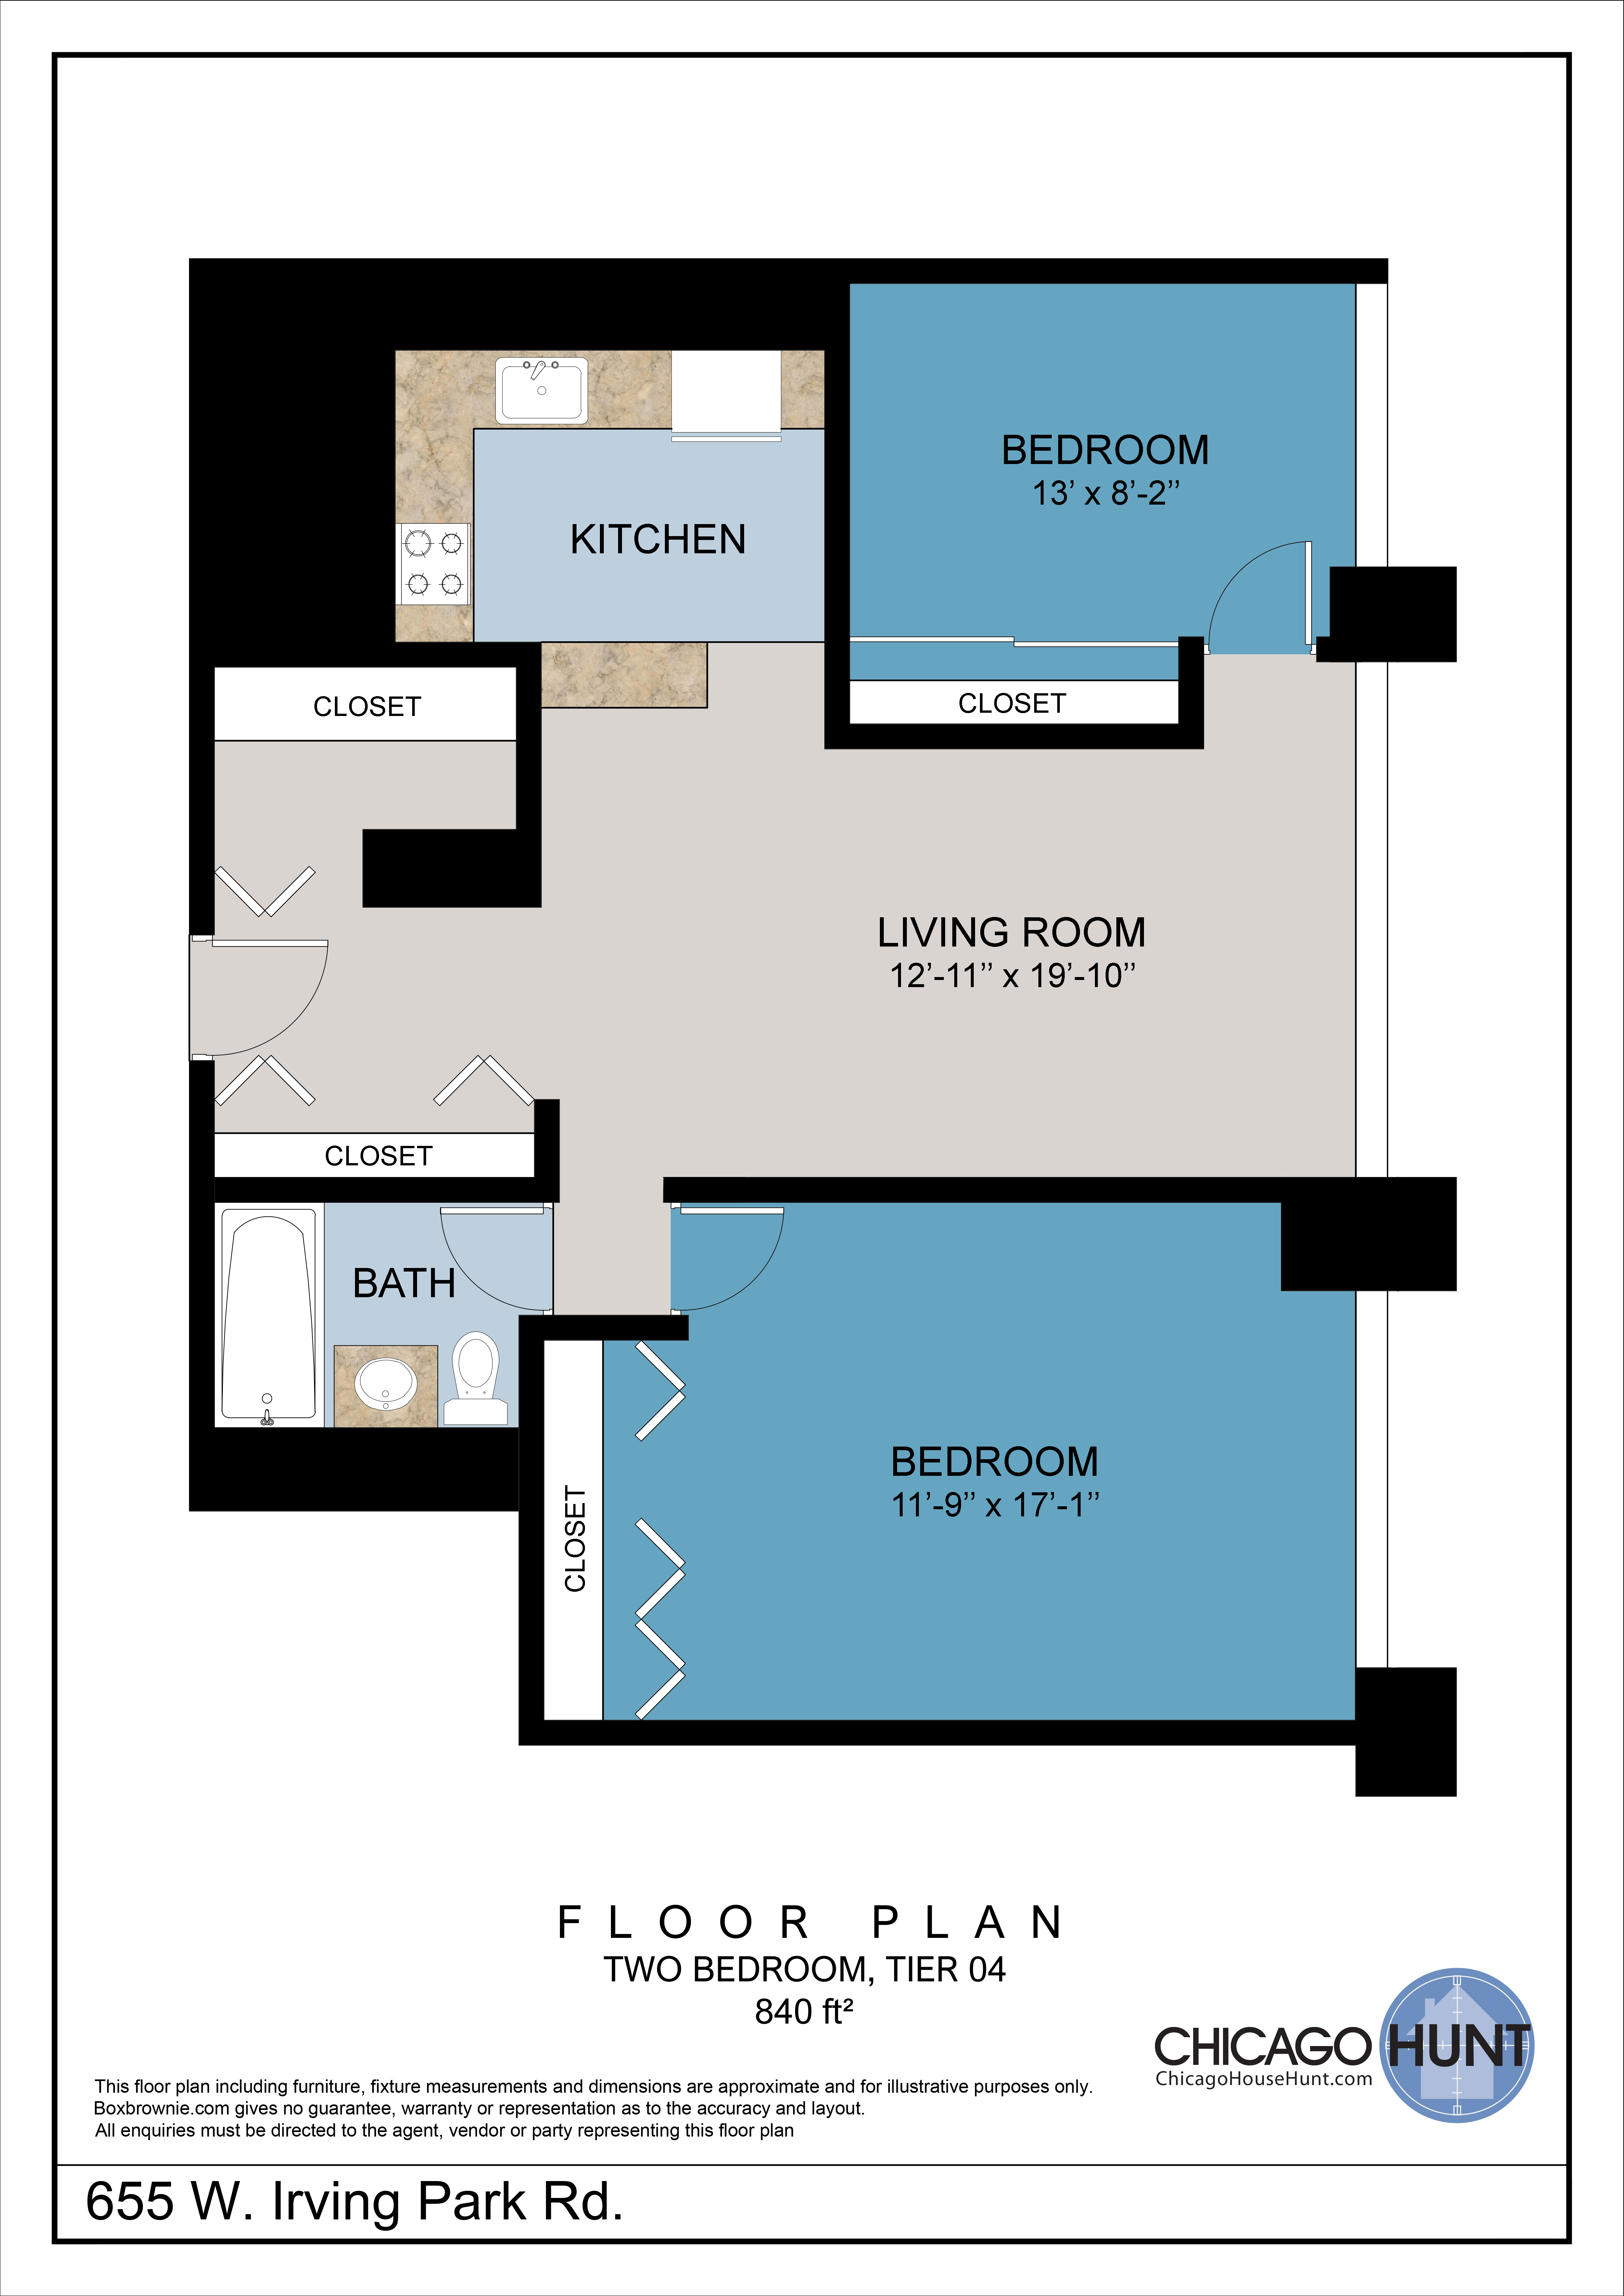 655 Irving Park, Park Place Towere - Floor Plan - Tier 04